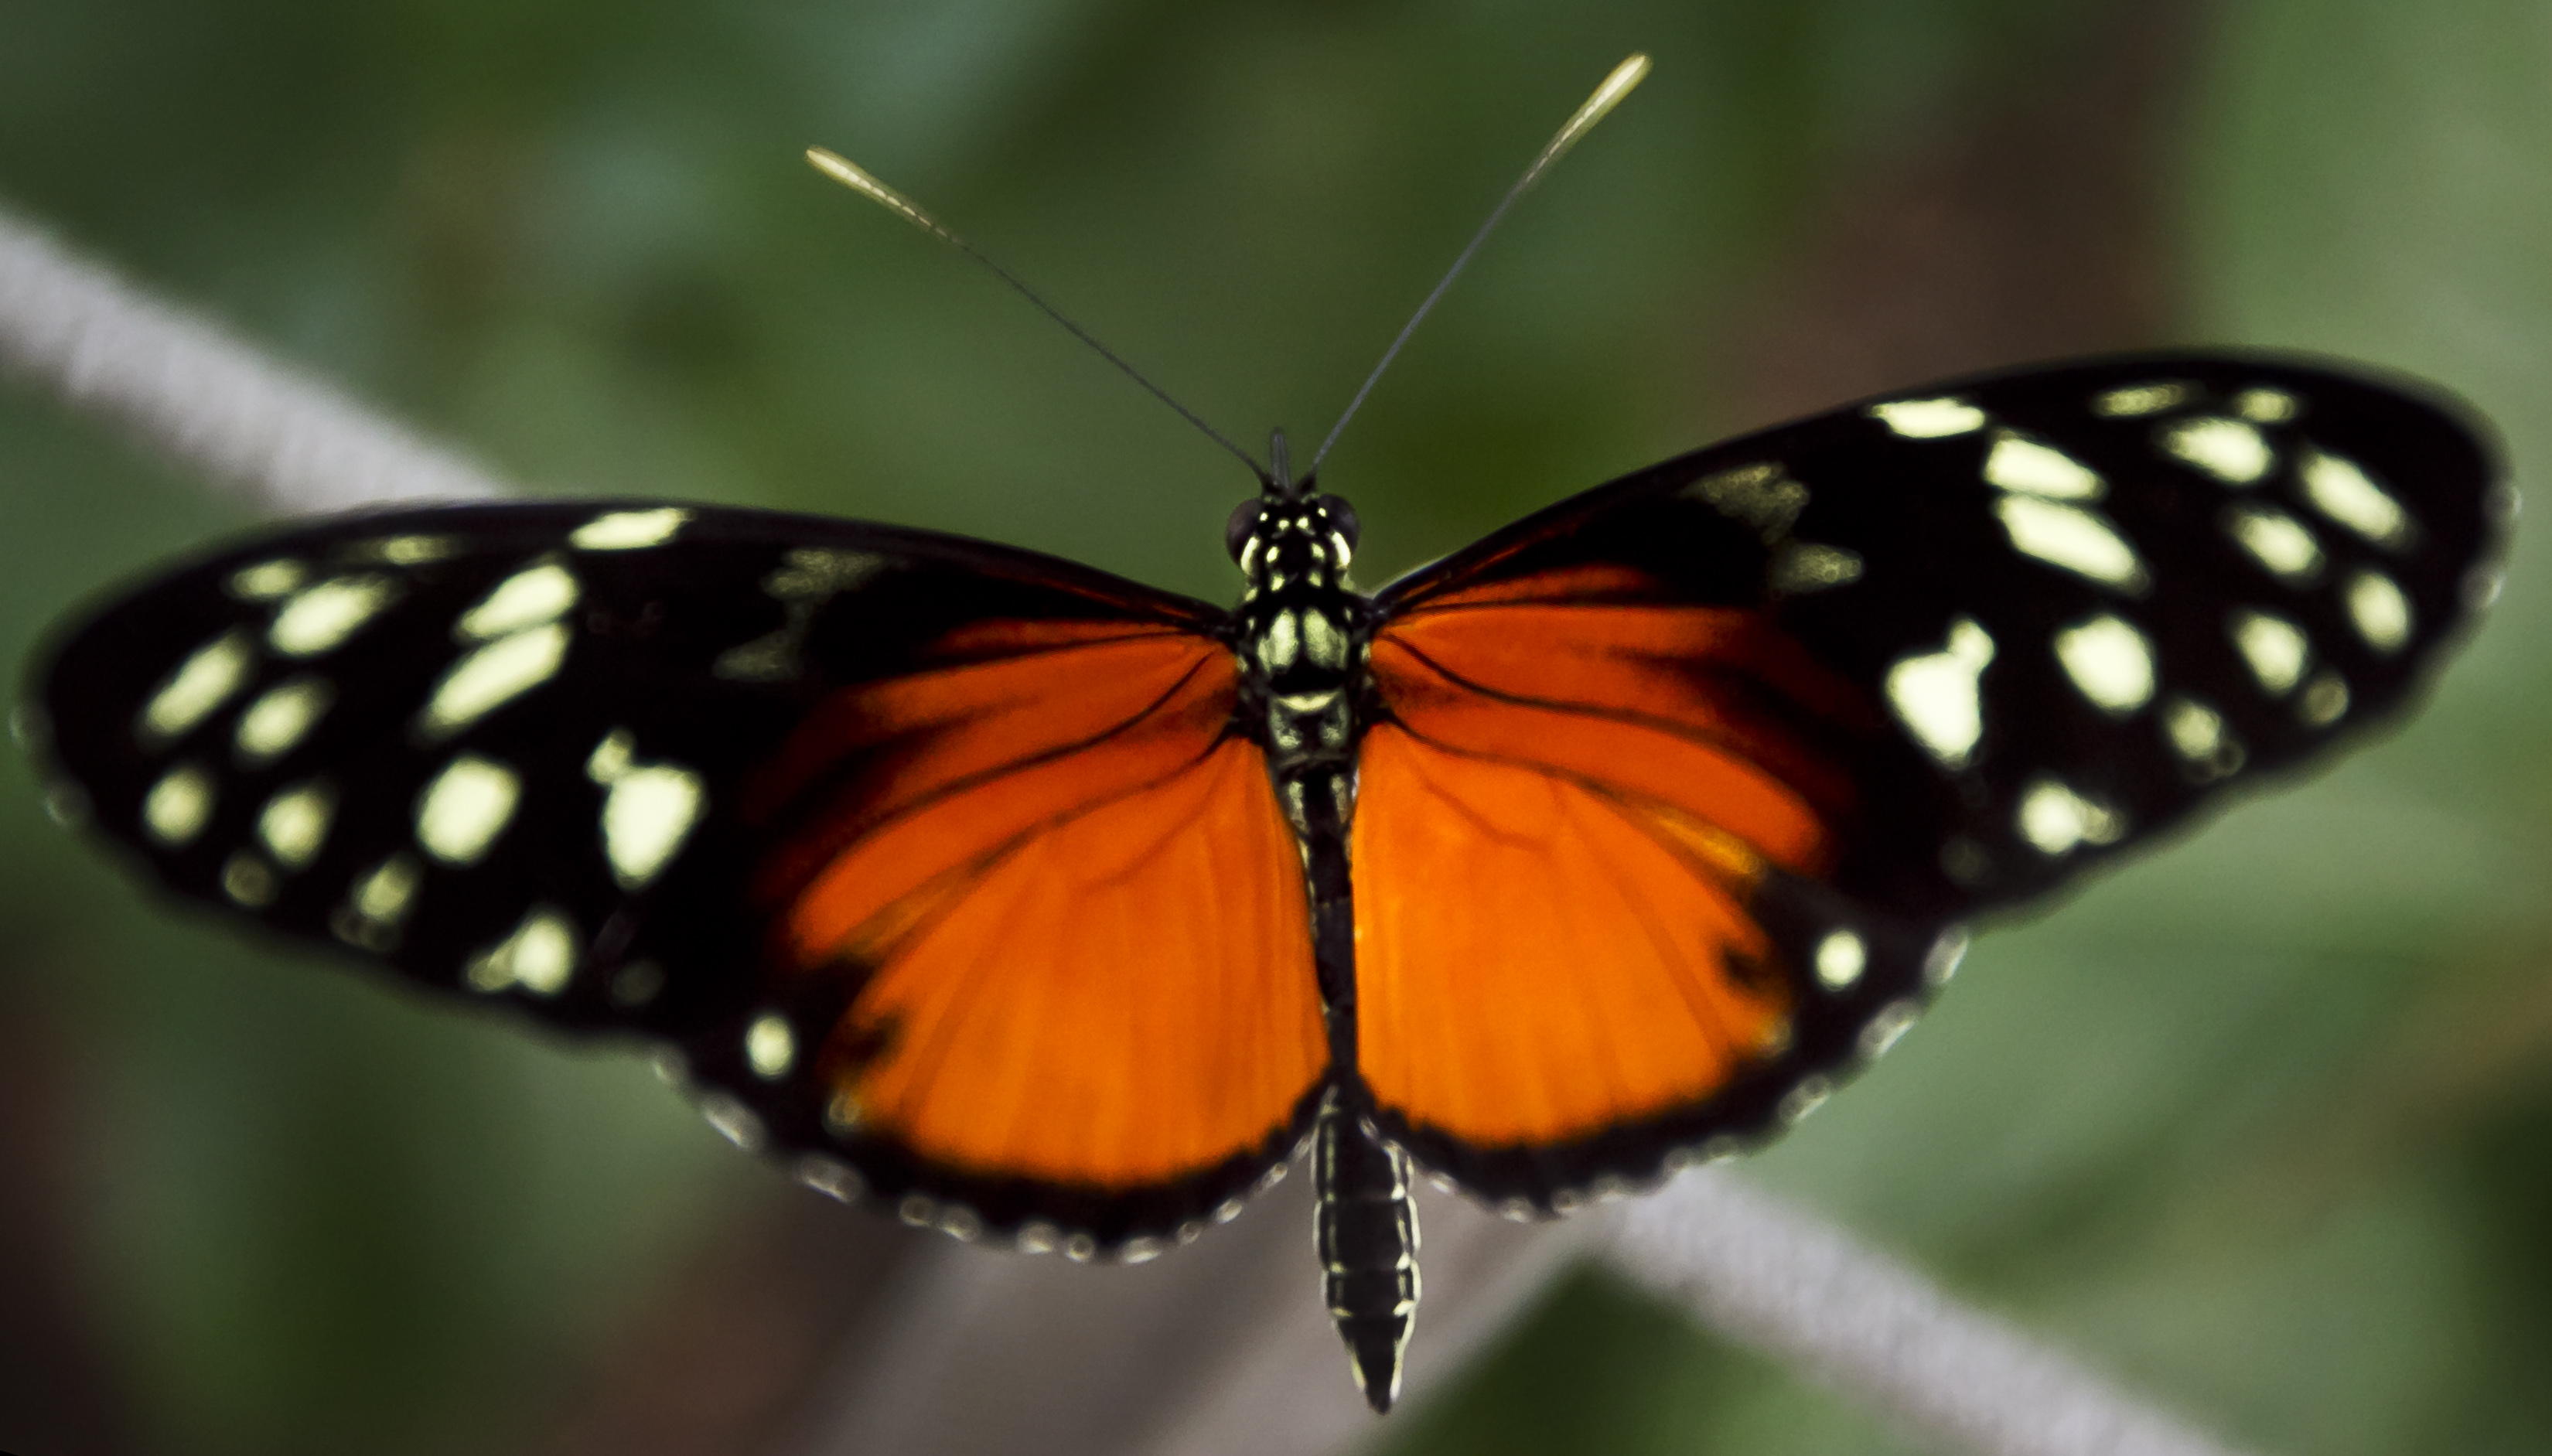 Frederik Meijer Gardens Butterflies In Bloom Exhibit Opens This Week